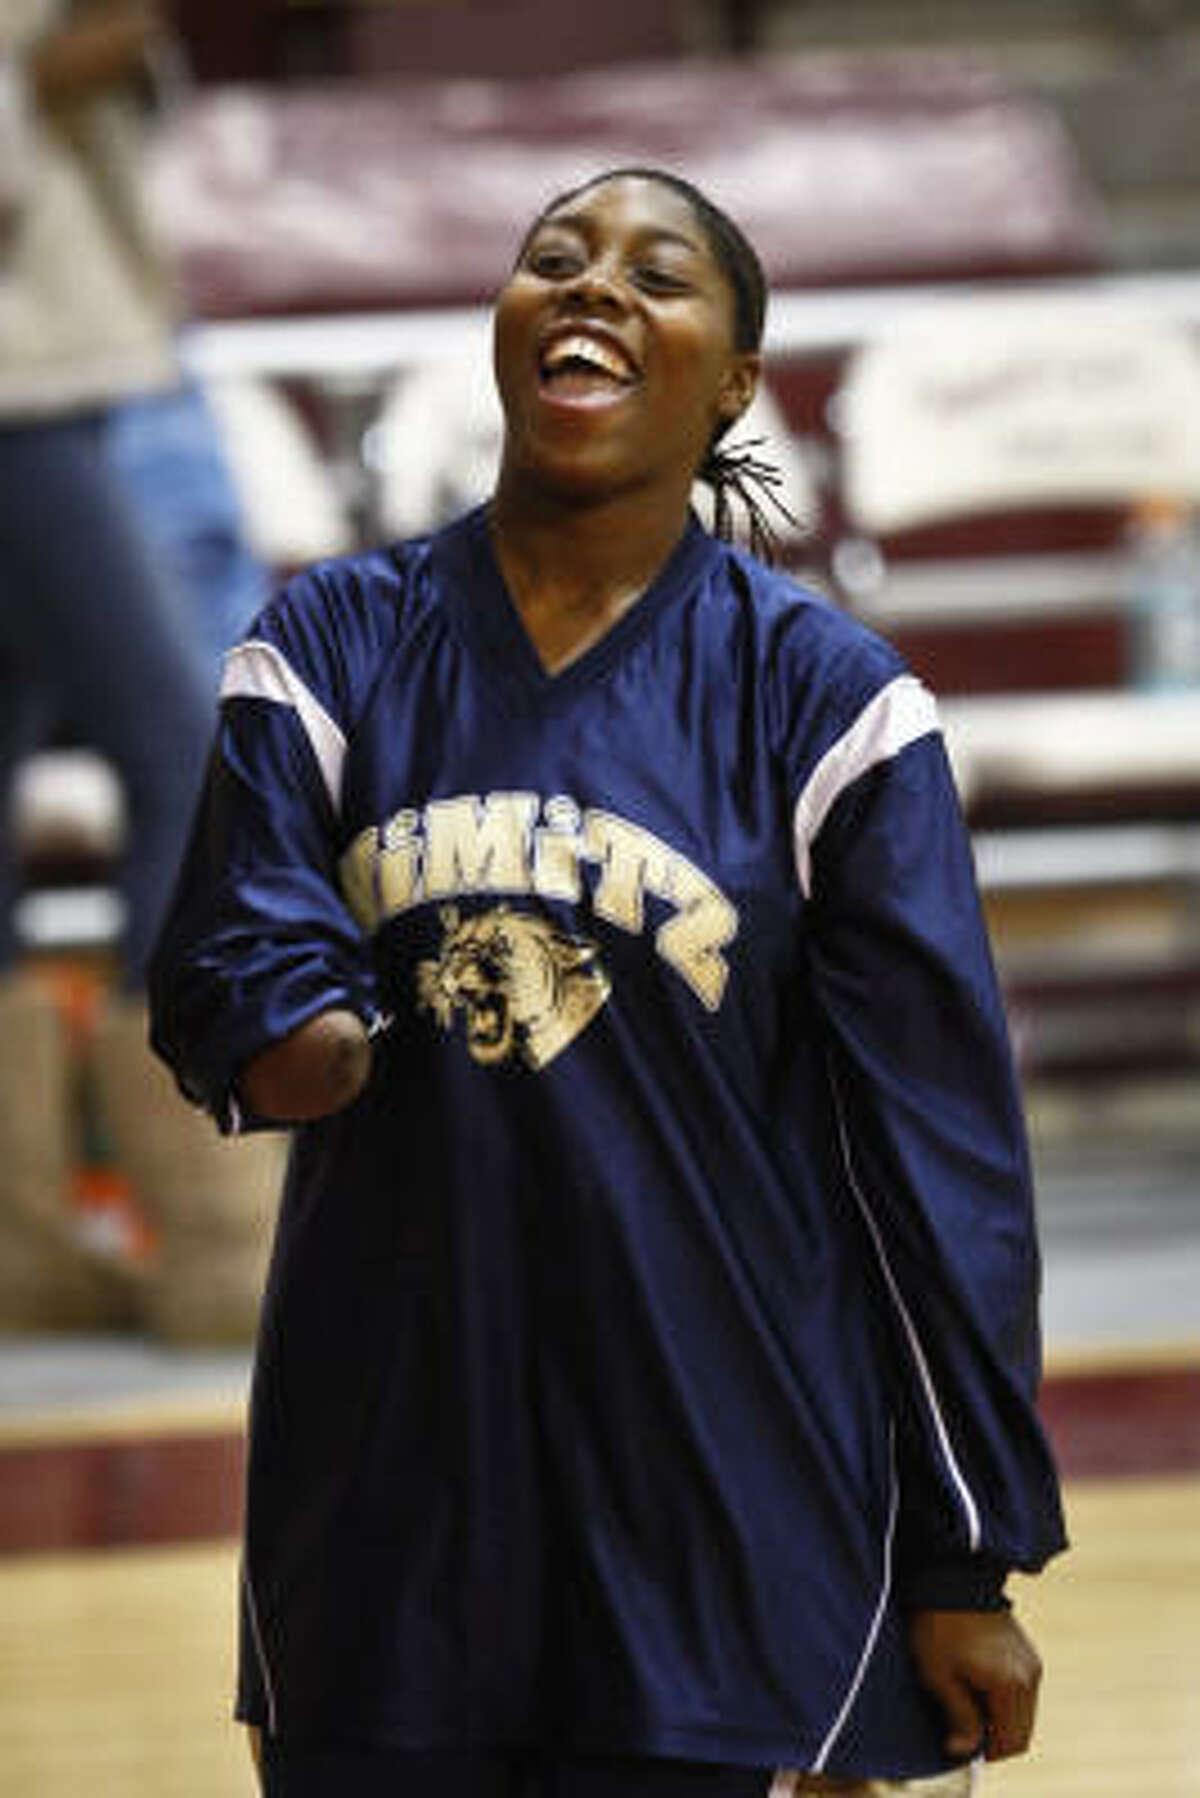 Nimitz senior Jesse Landry has played a key role for her team this season, not held down by opponents or her handicap.